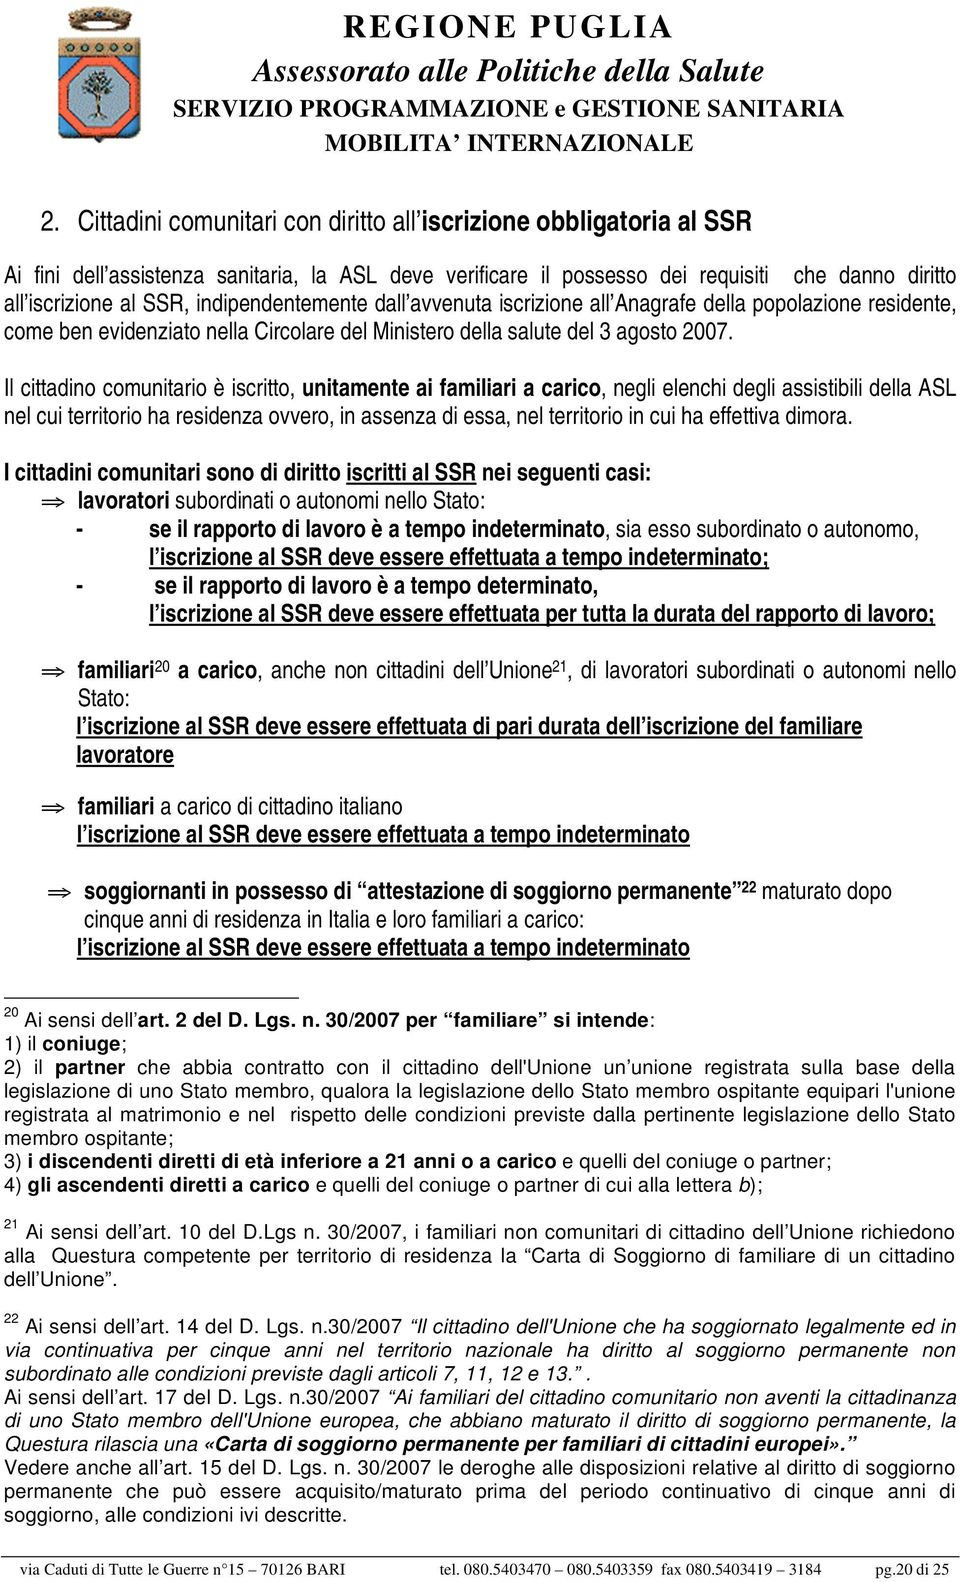 Best Carta Di Soggiorno Permanente Extracomunitari Images - Modern ...